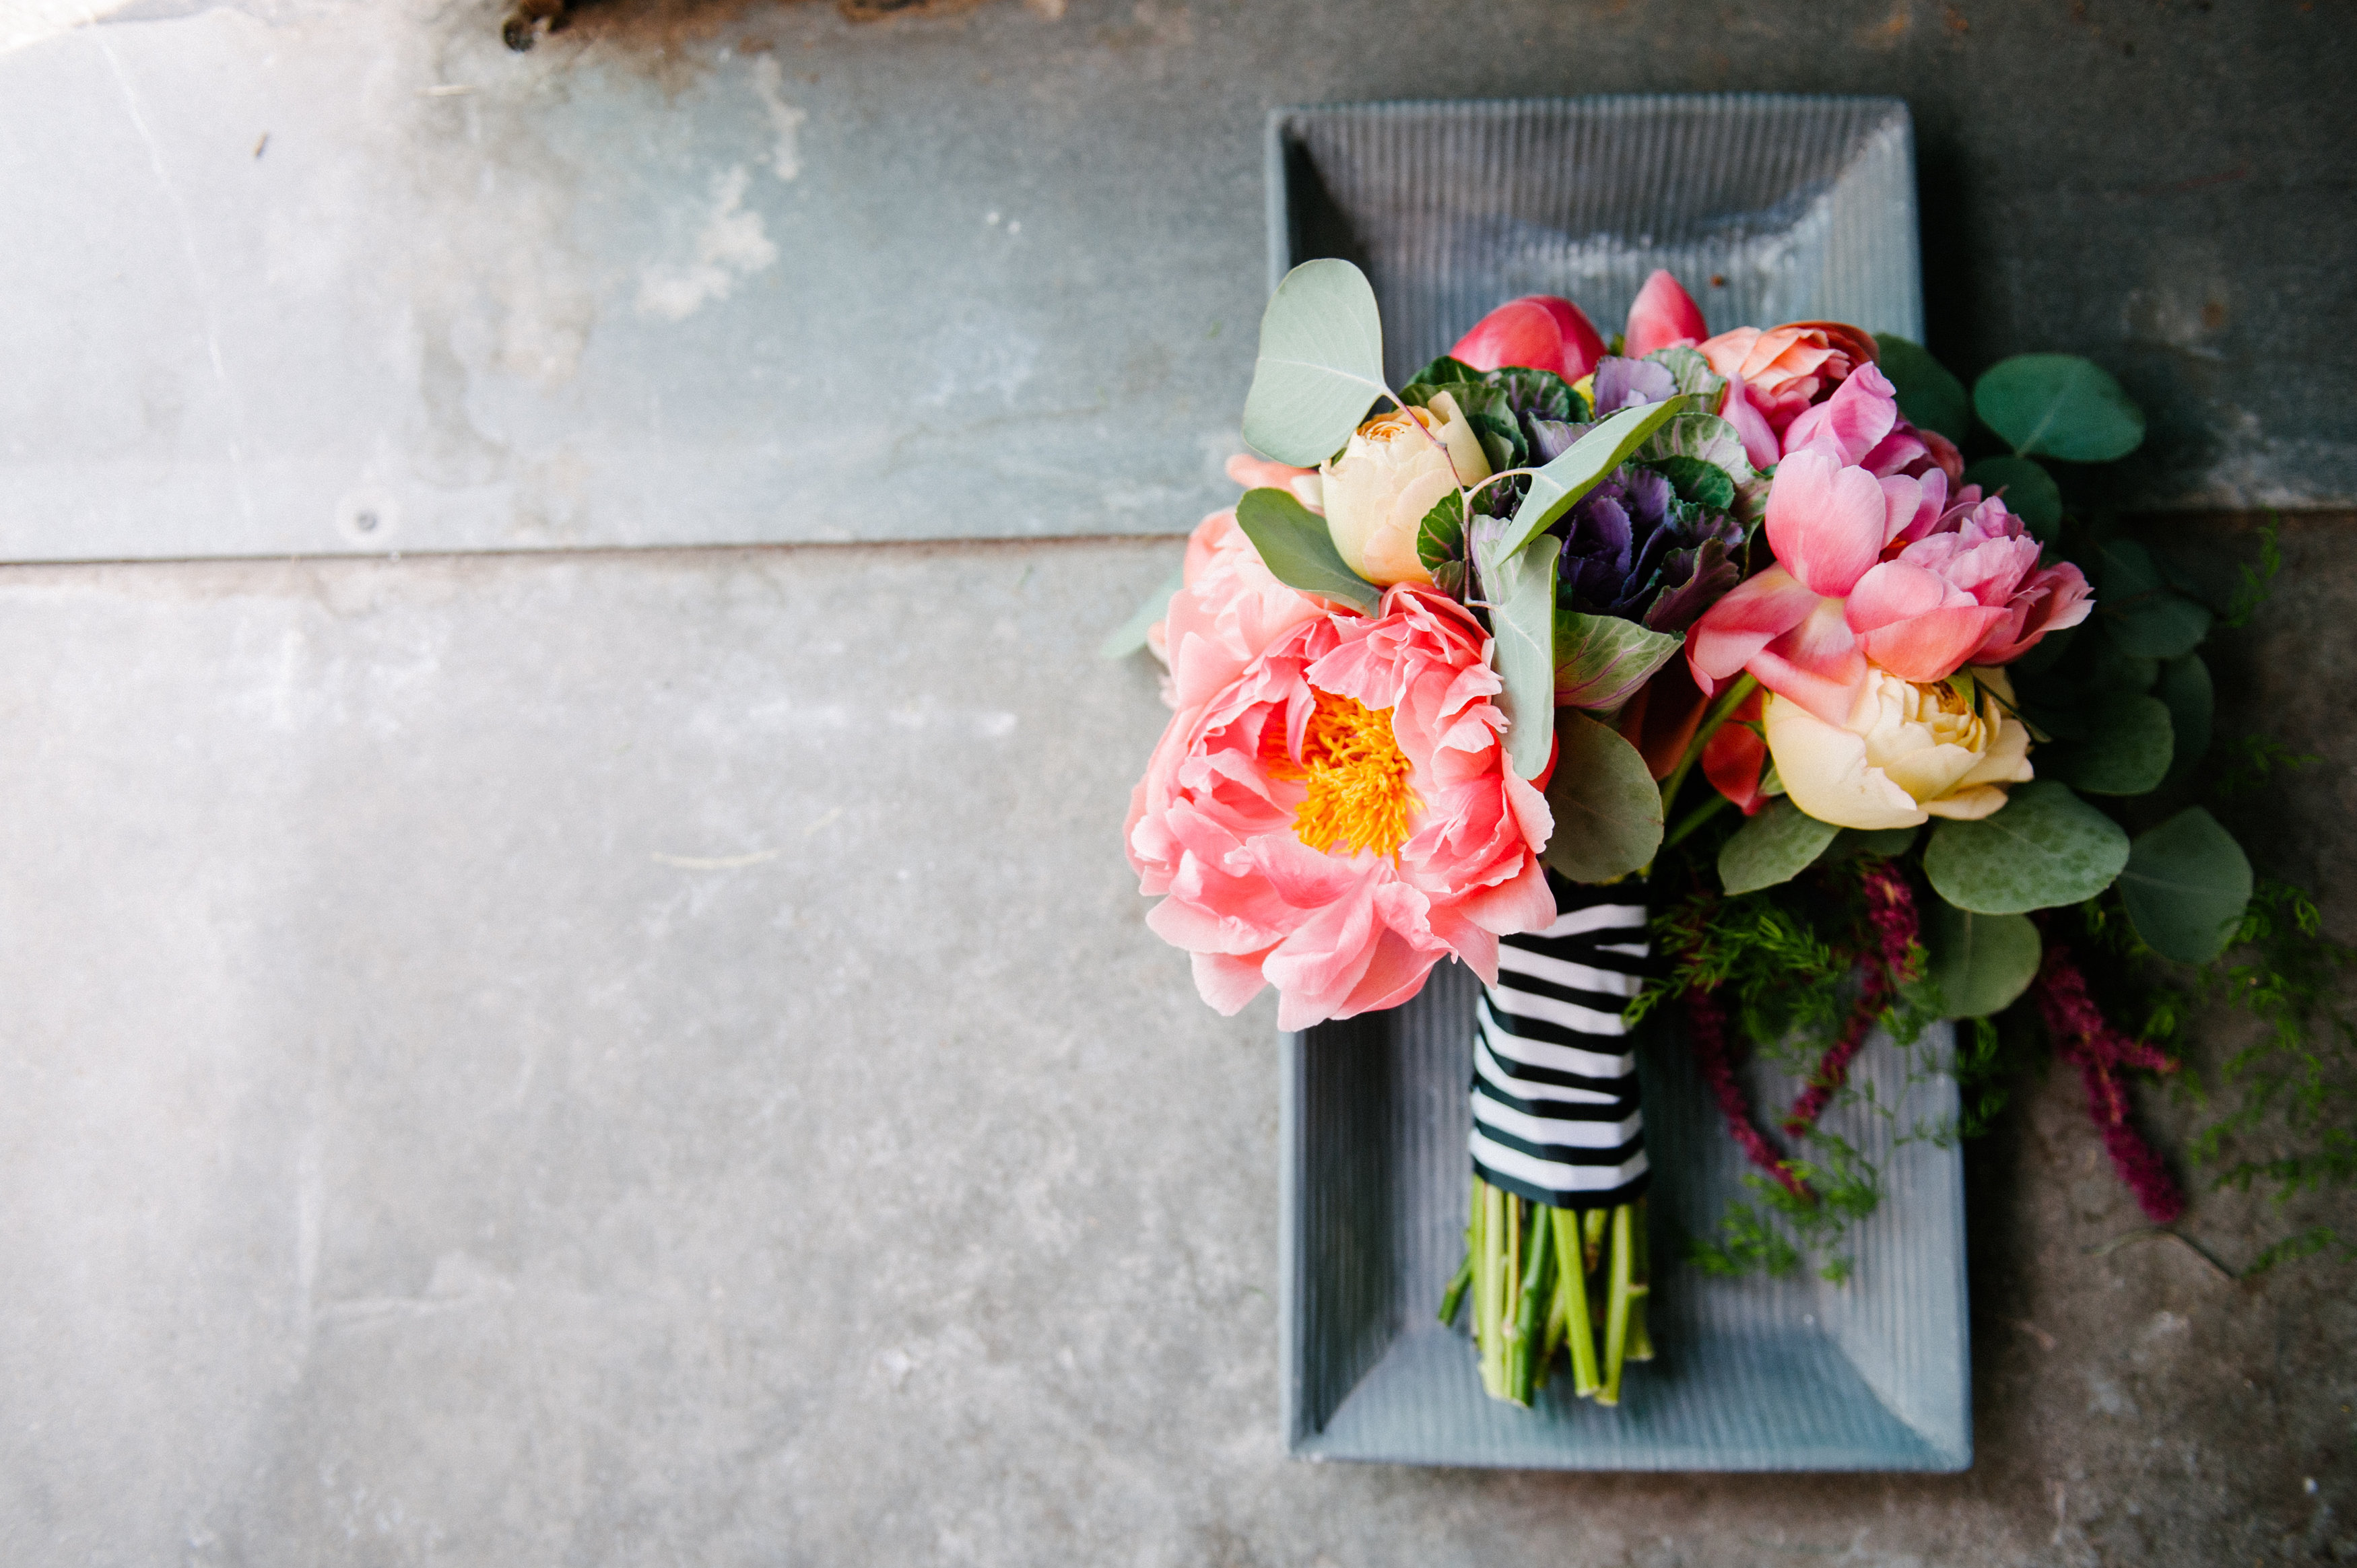 How To Make A Colorful Oversized Wedding Bouquet - BridalPulse